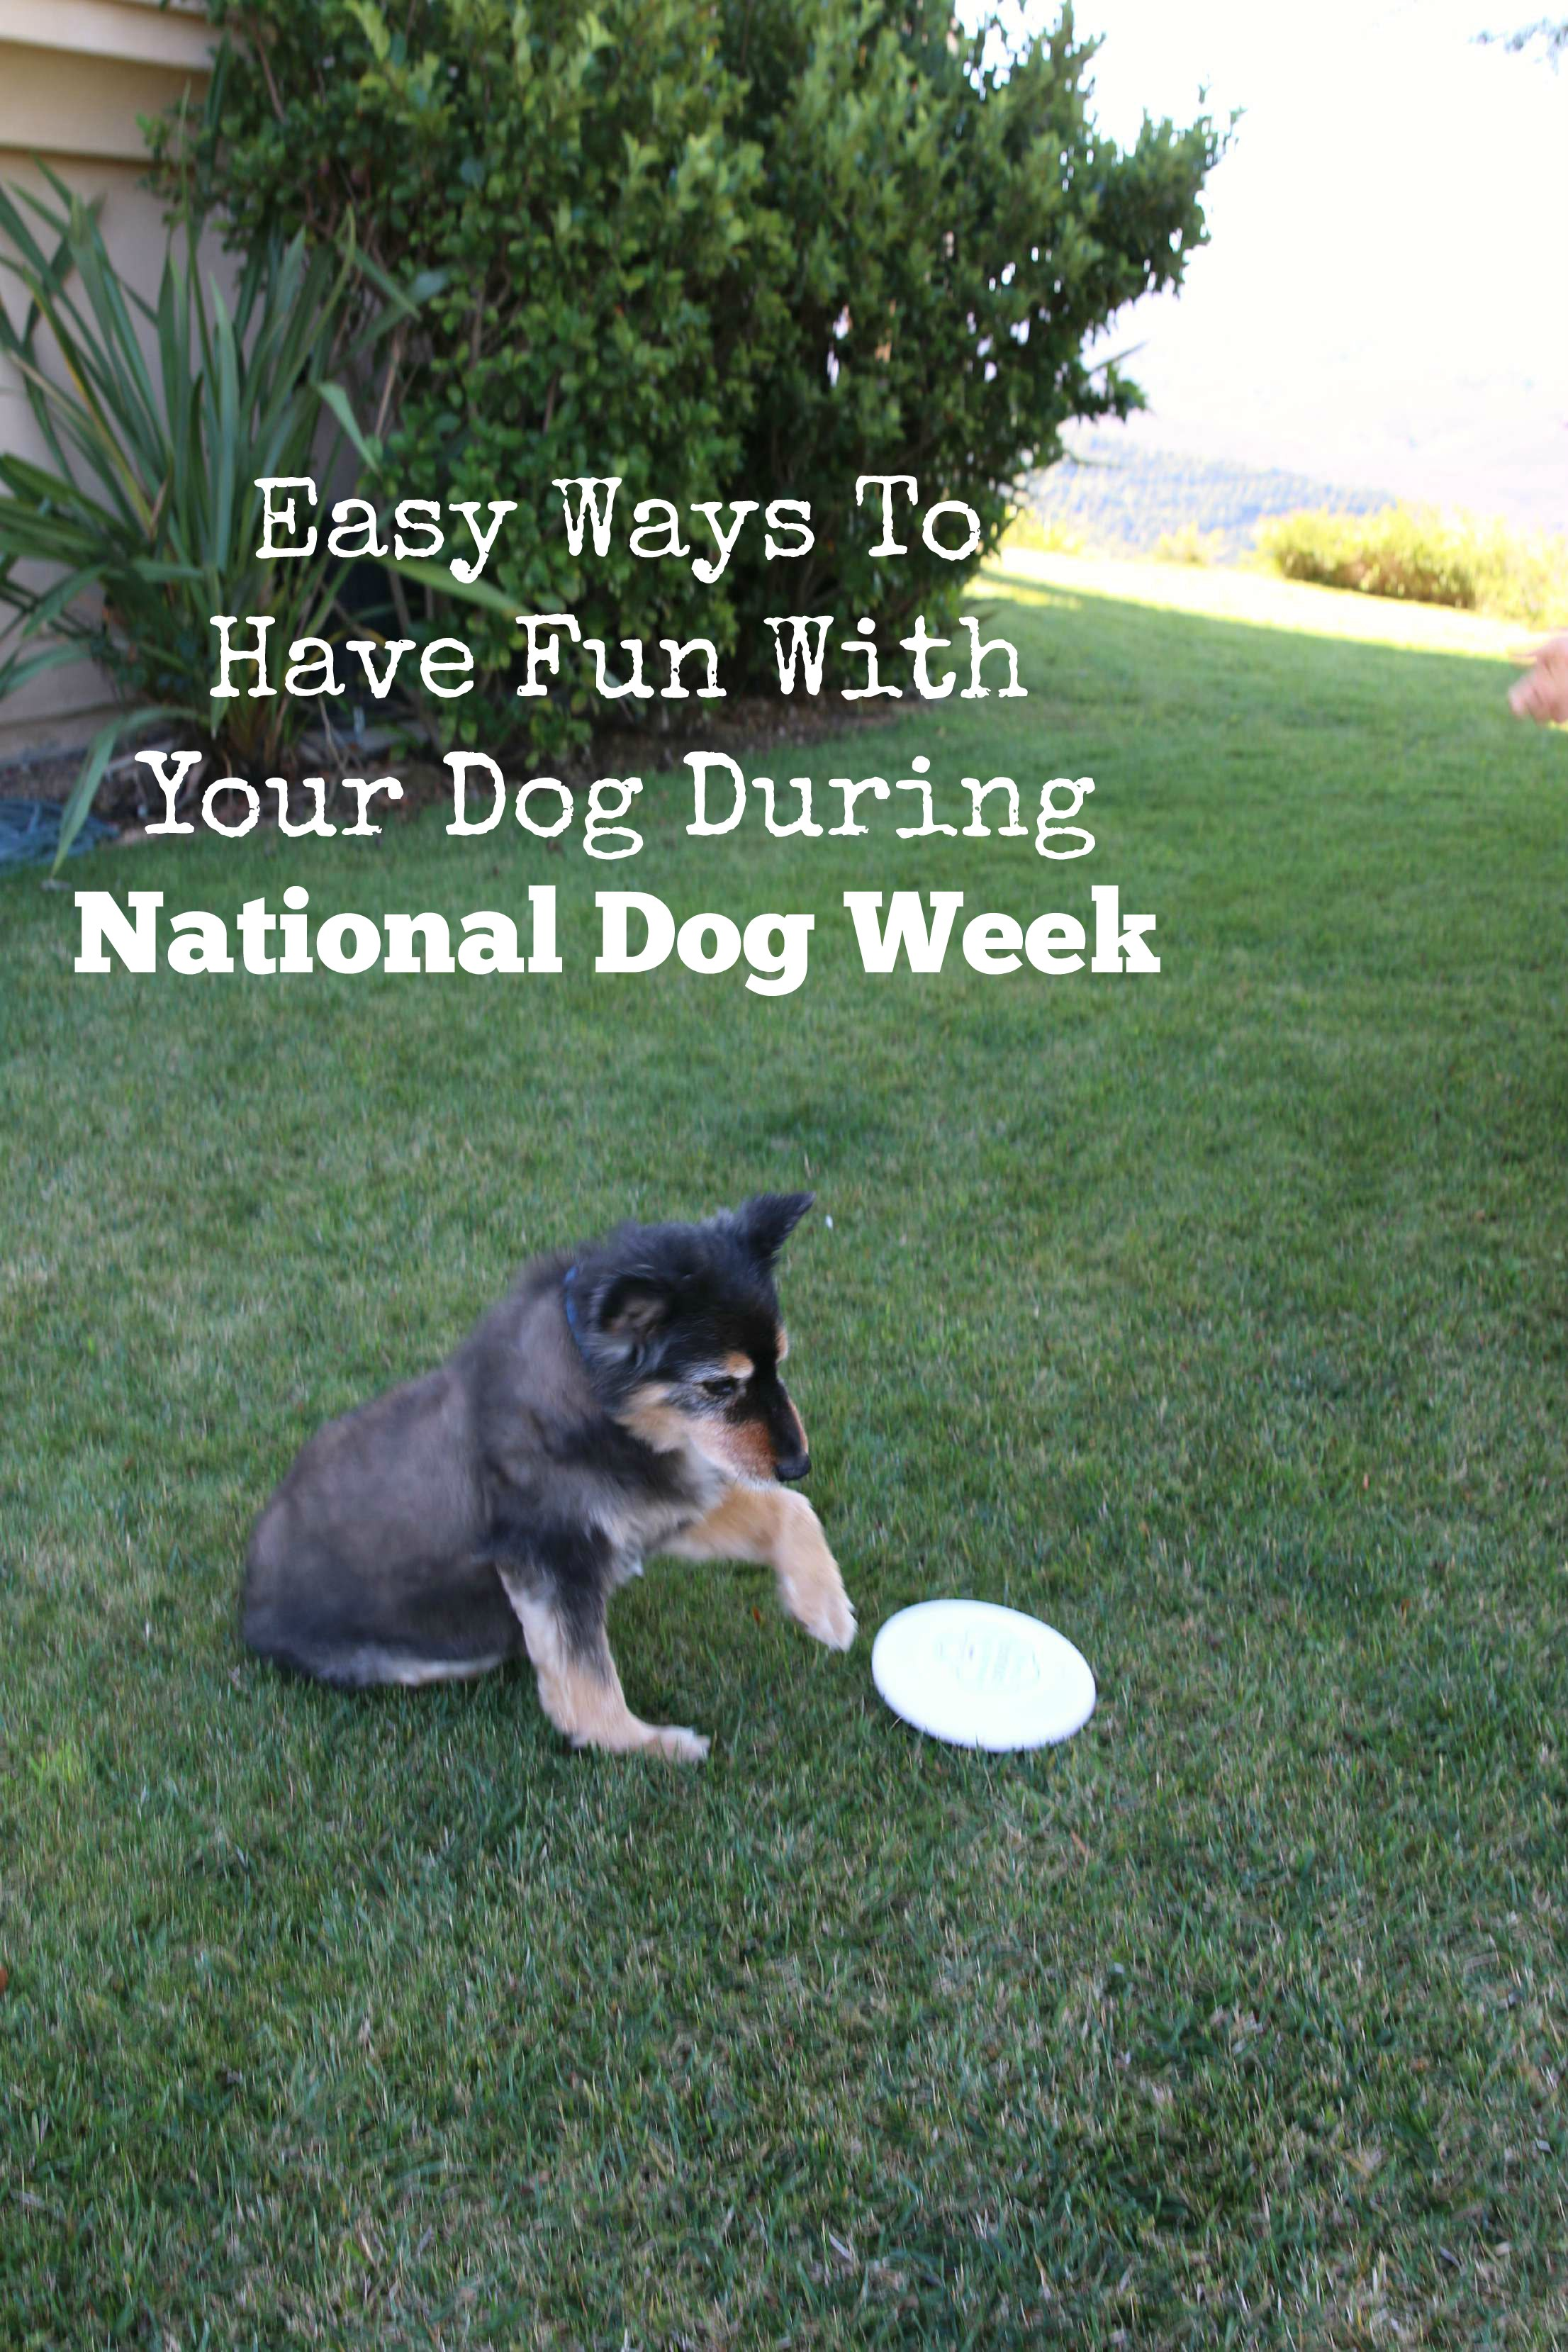 easy-ways-to-have-fun-with-your-dog